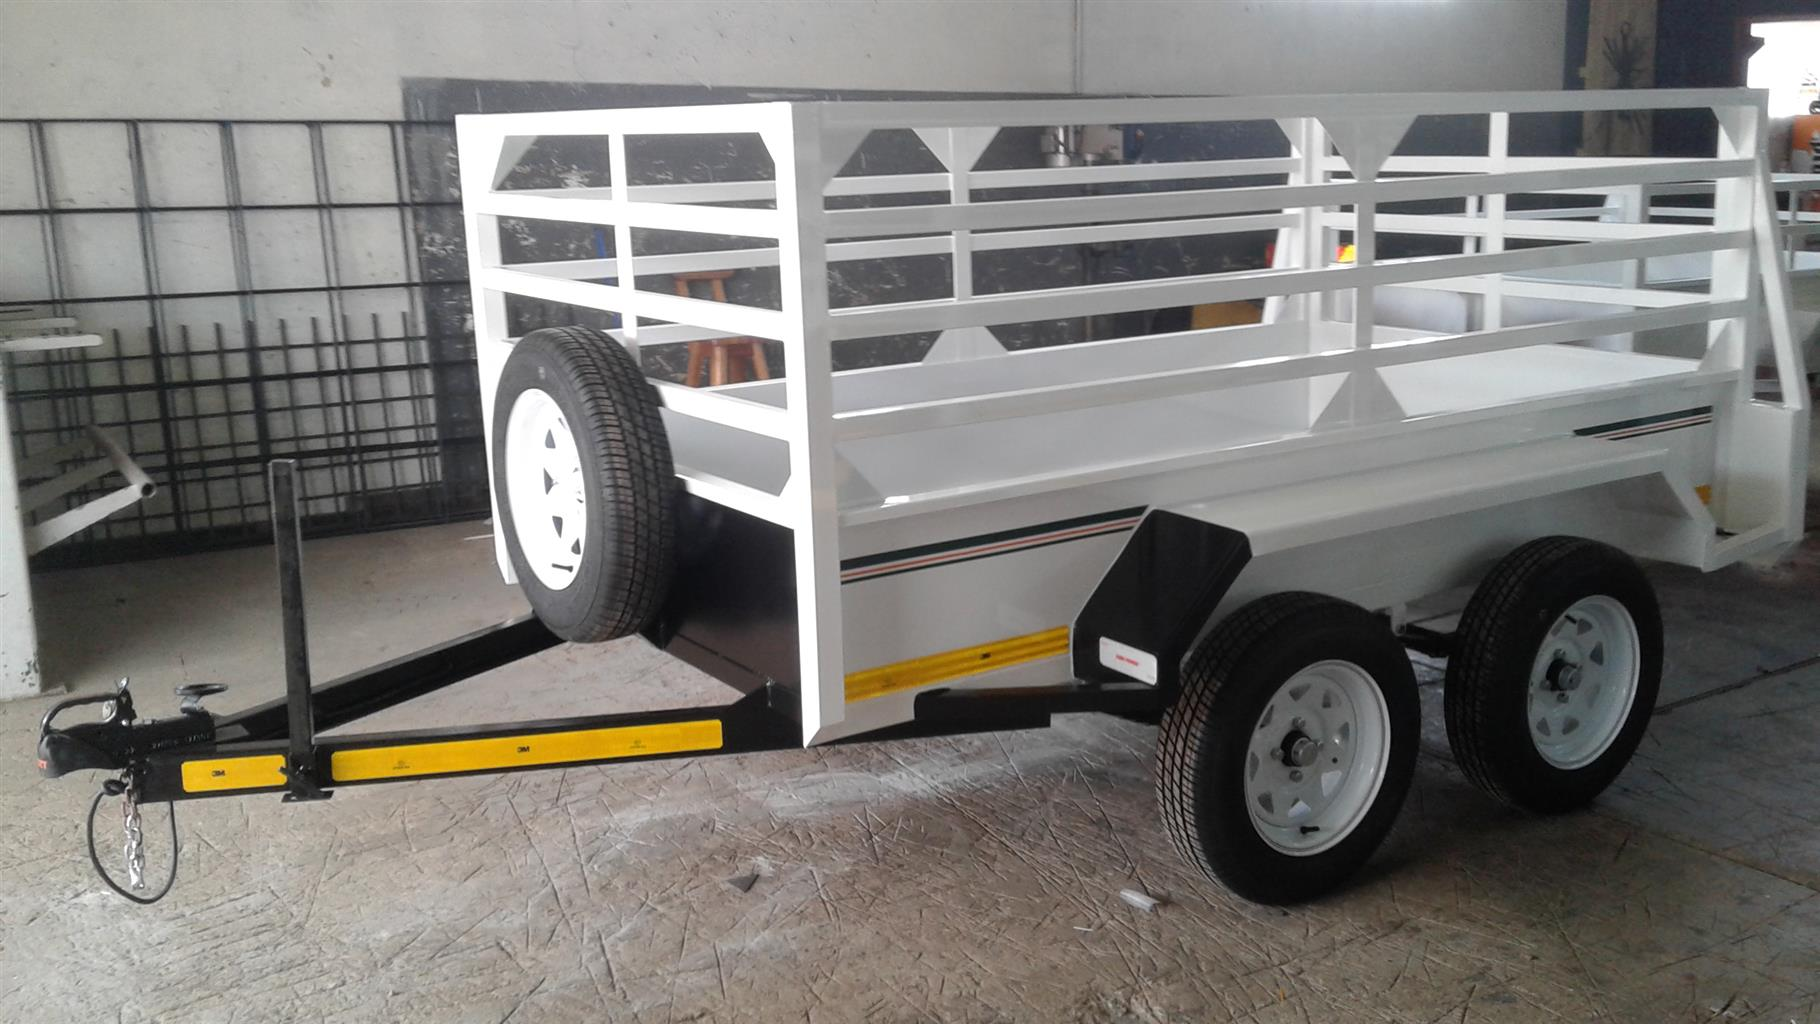 2.4m DOUBLE AXLE UTILITY TRAILER ONLY ON ORDER TO BE BUILD